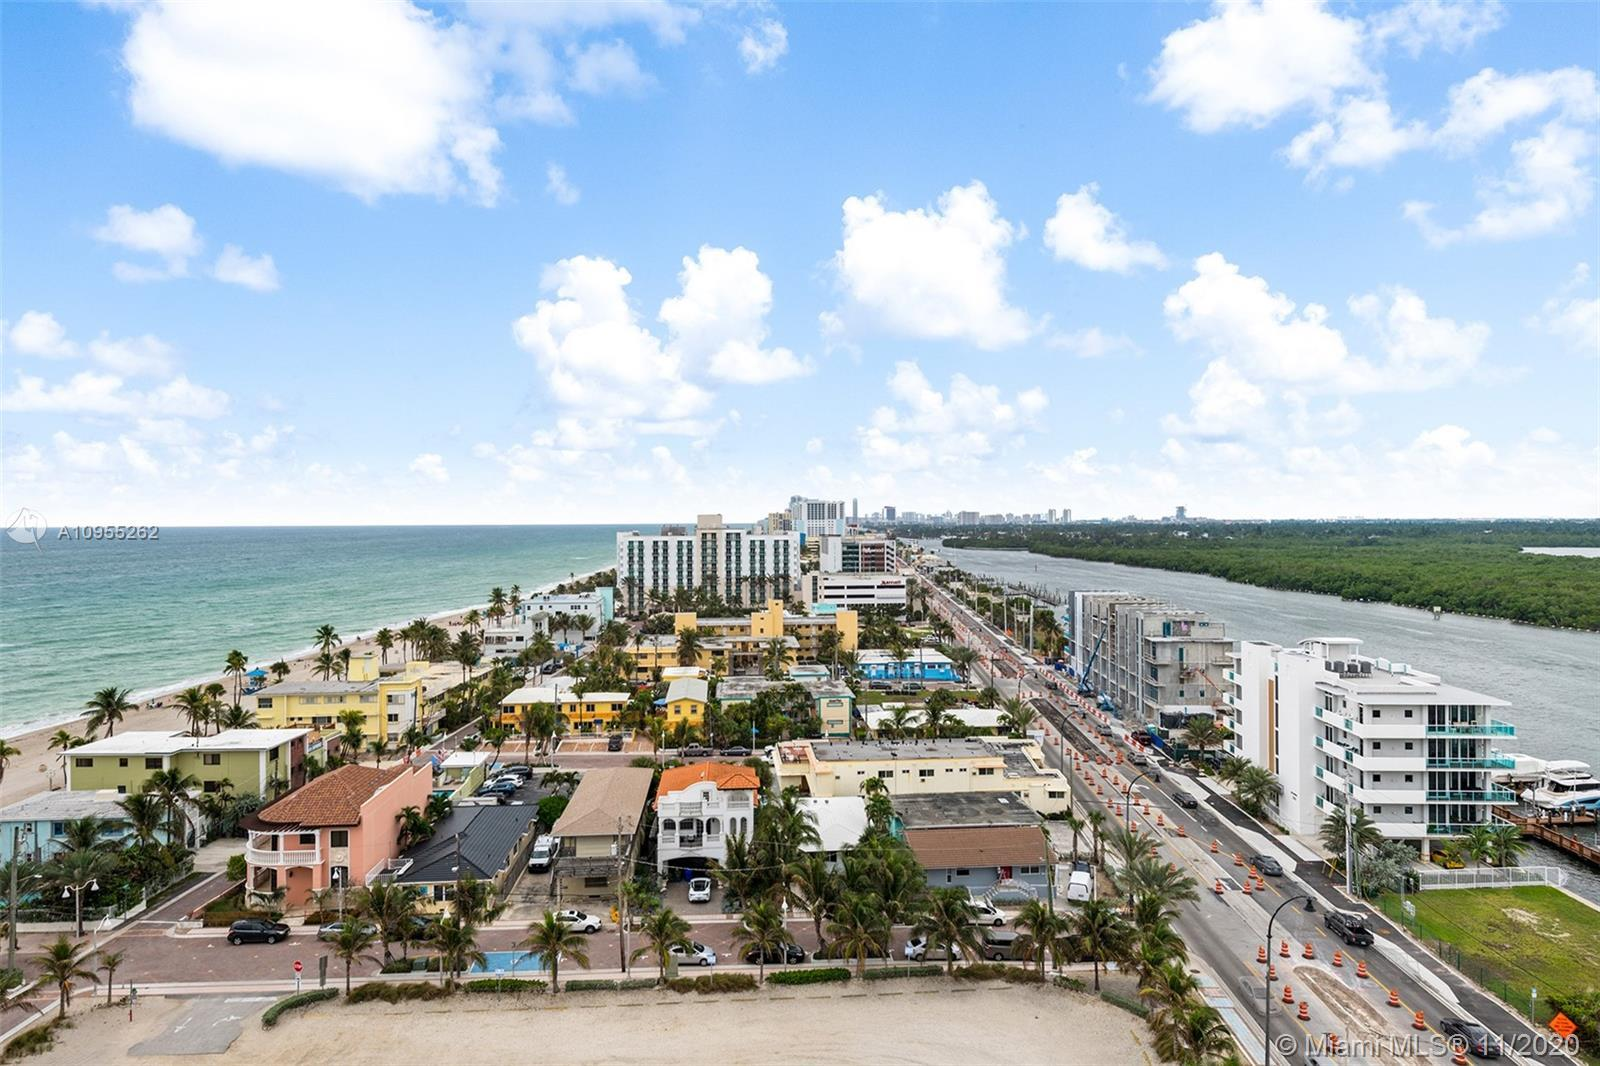 Perfectly located on Hollywood Beach Broadwalk! Walking distance to Margaritaville and other restaur